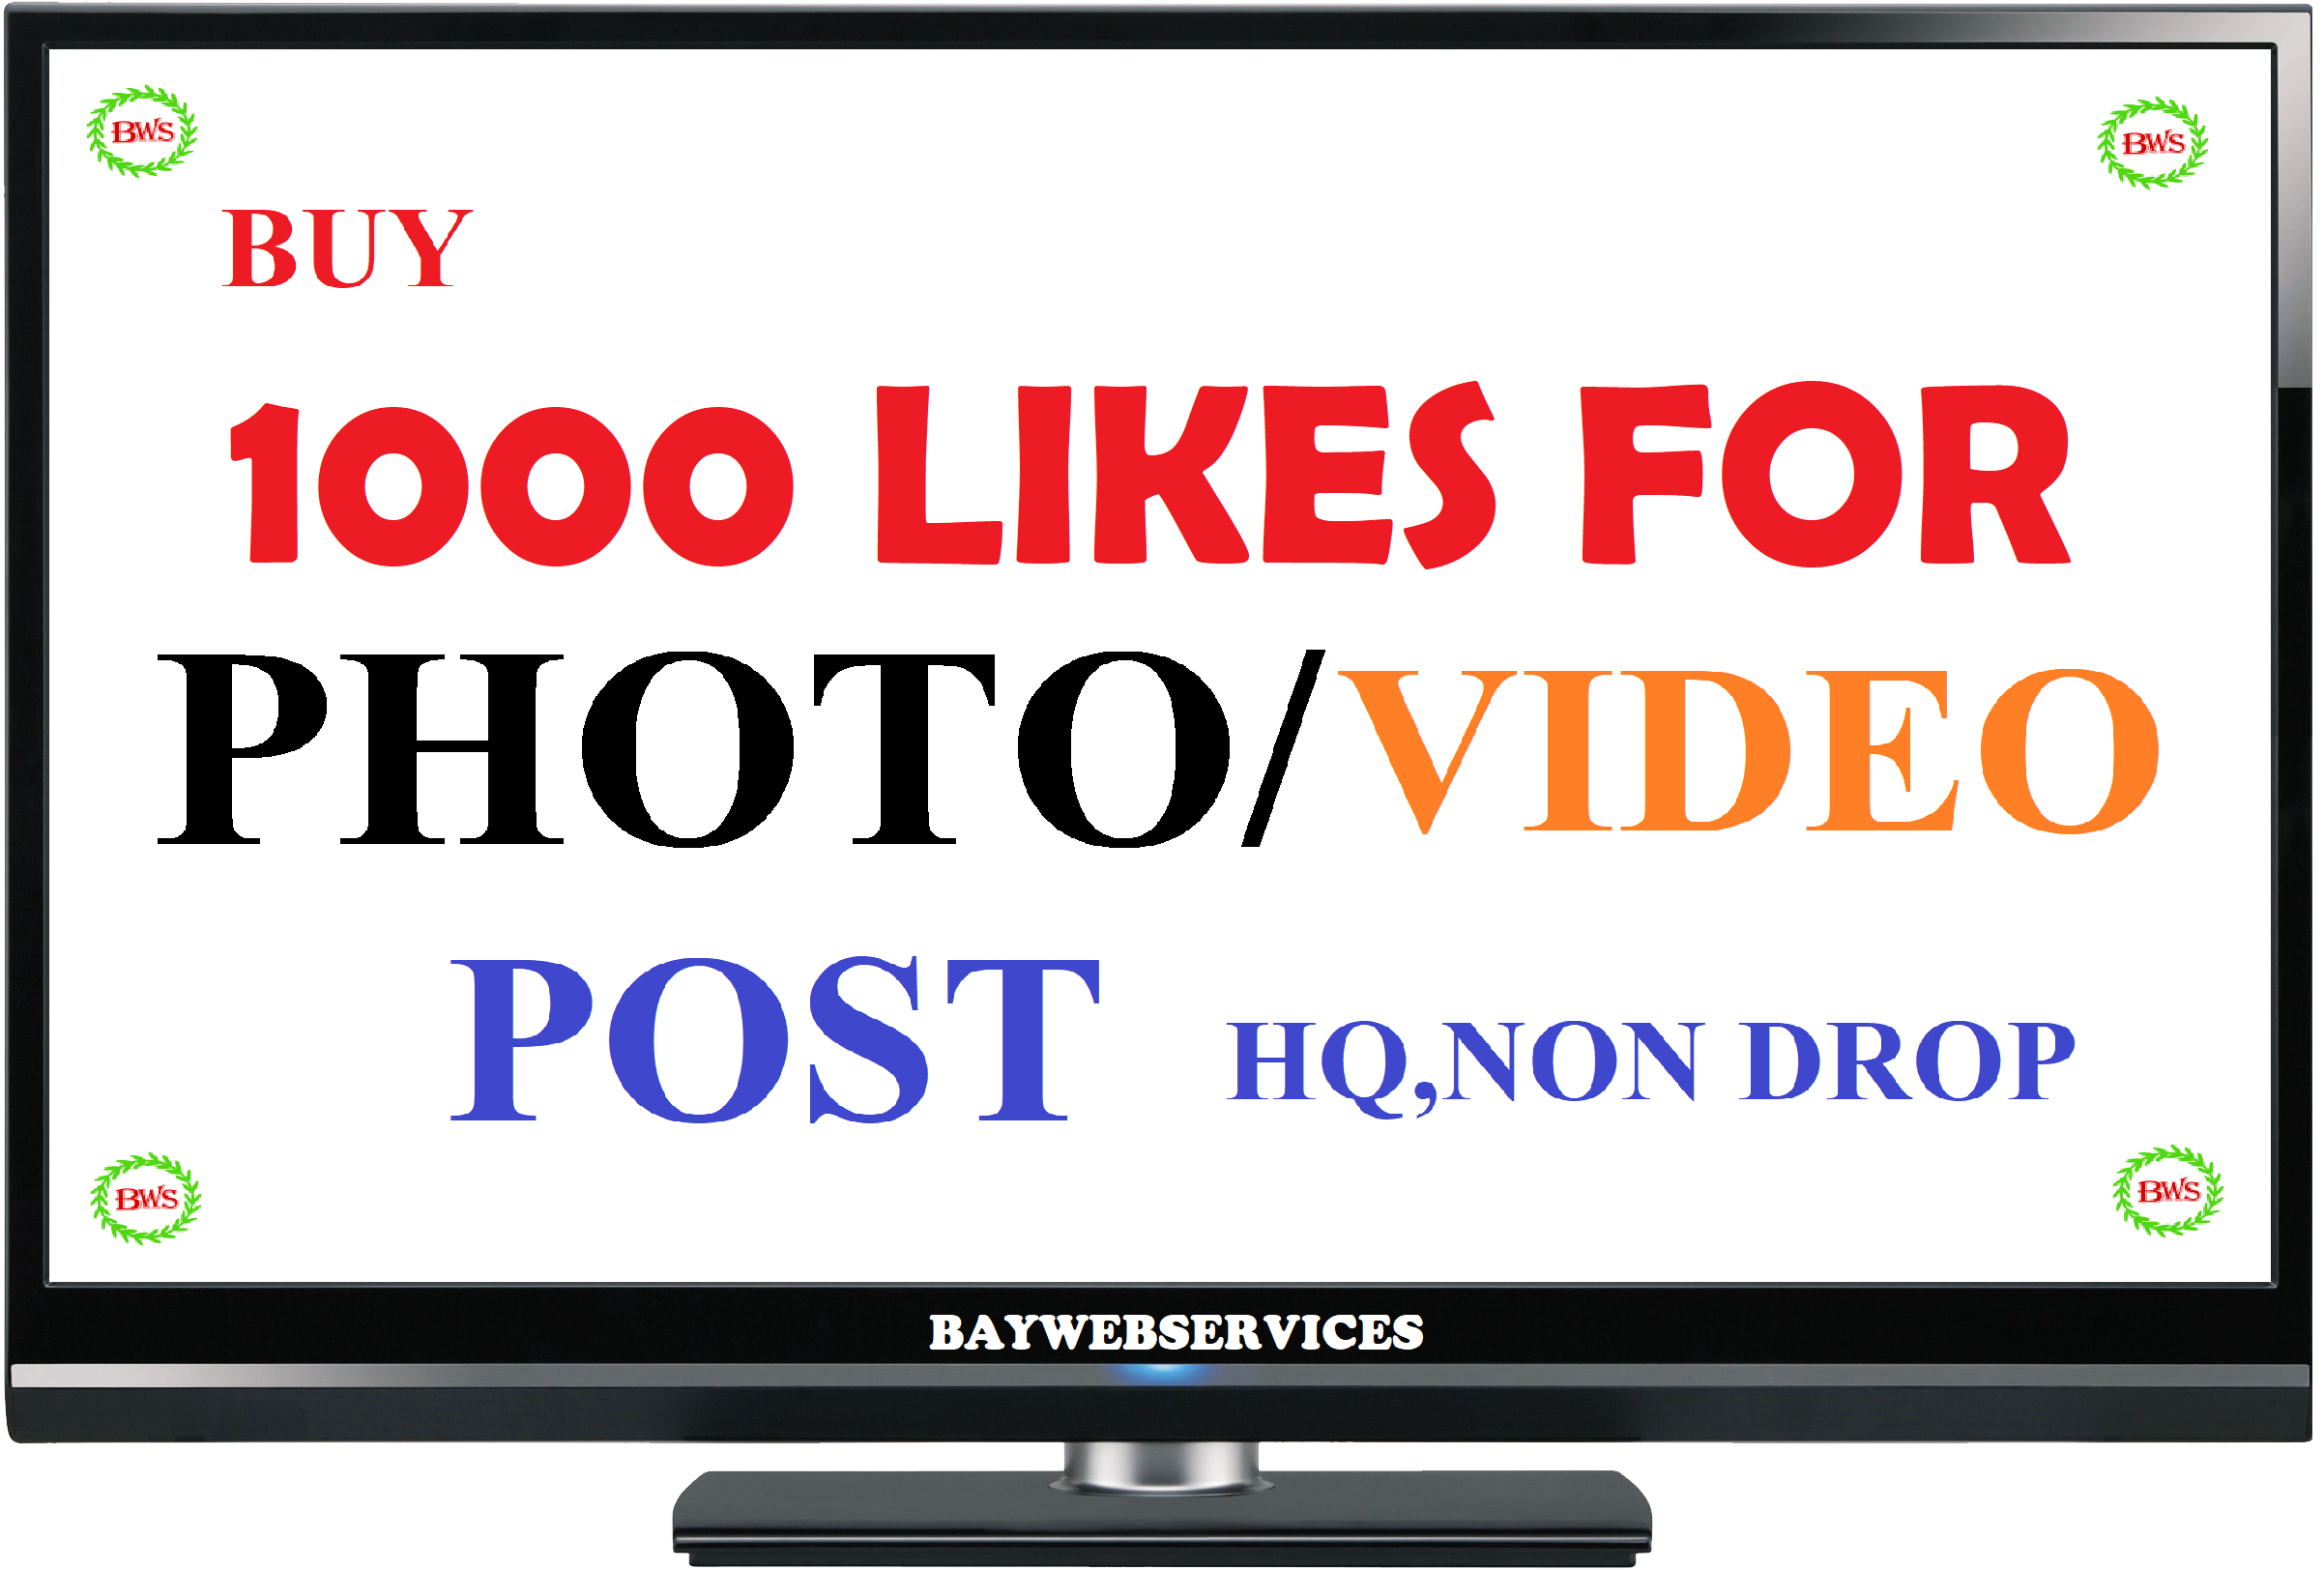 INSTANT 1000 Picture OR Video-promotion drip feed